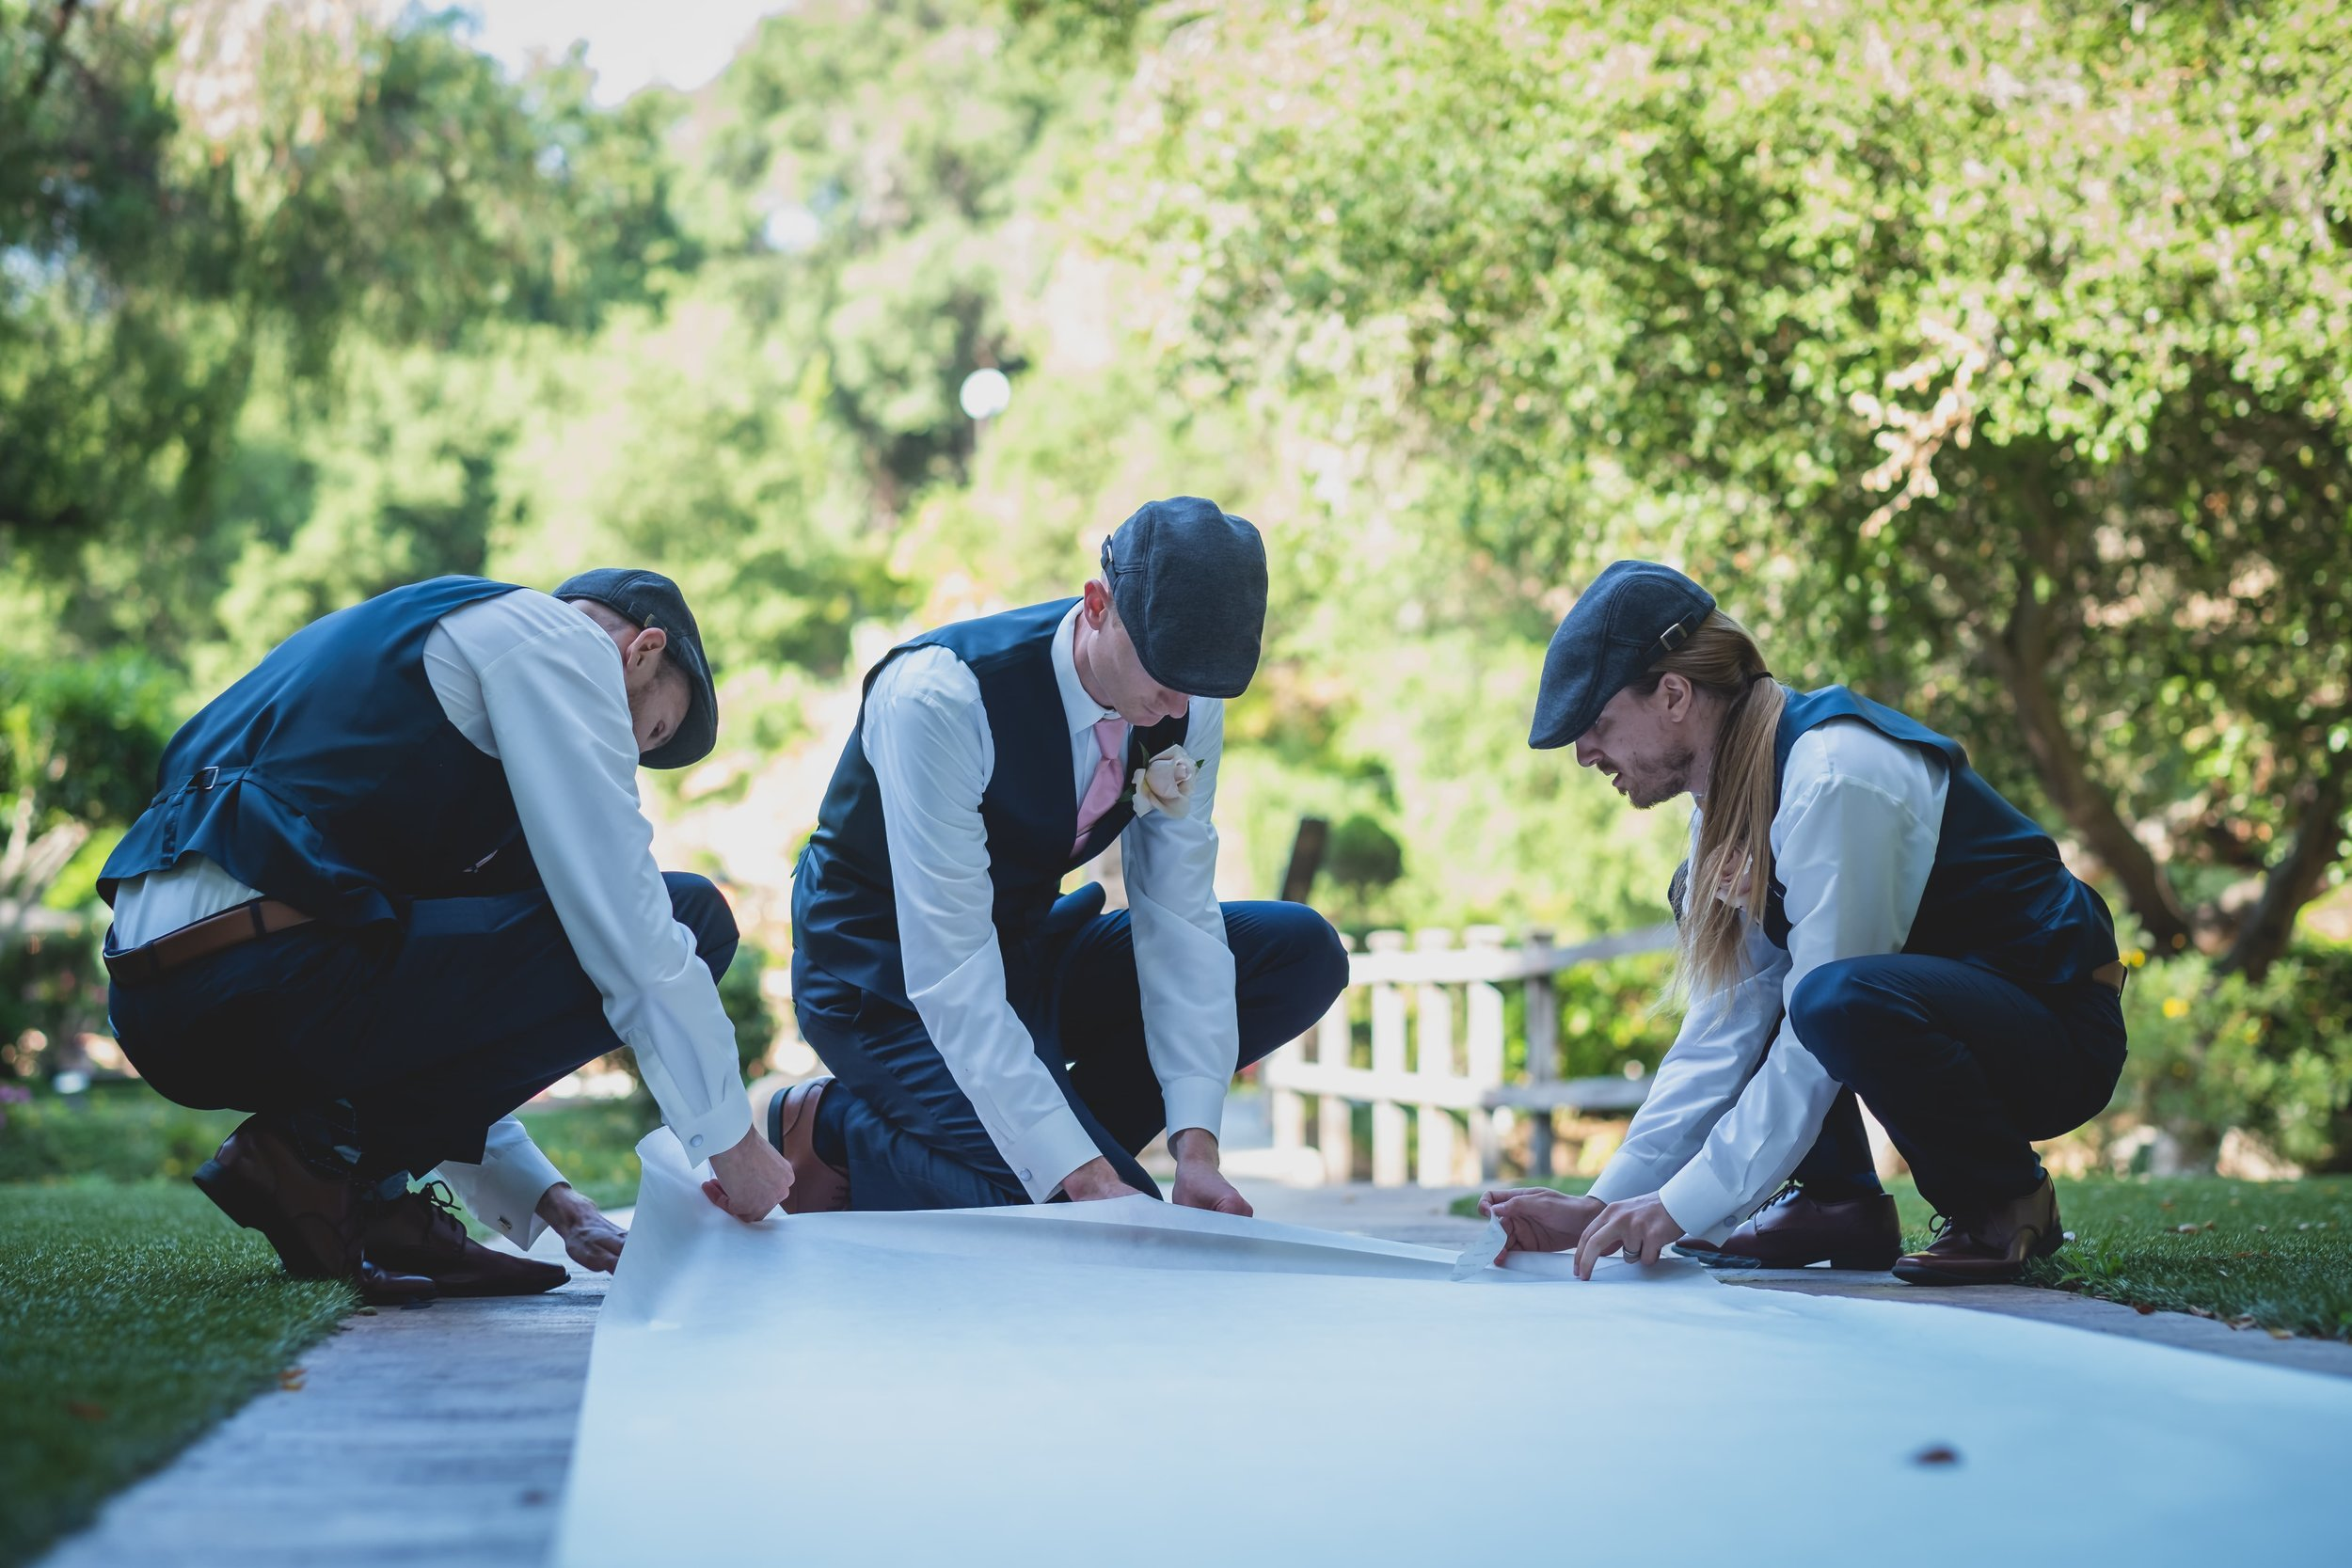 How To Keep Your Bridal Party Informed: A Guide To Keeping Everyone In The Loop - Groomsman helping decorate for the ceremony.